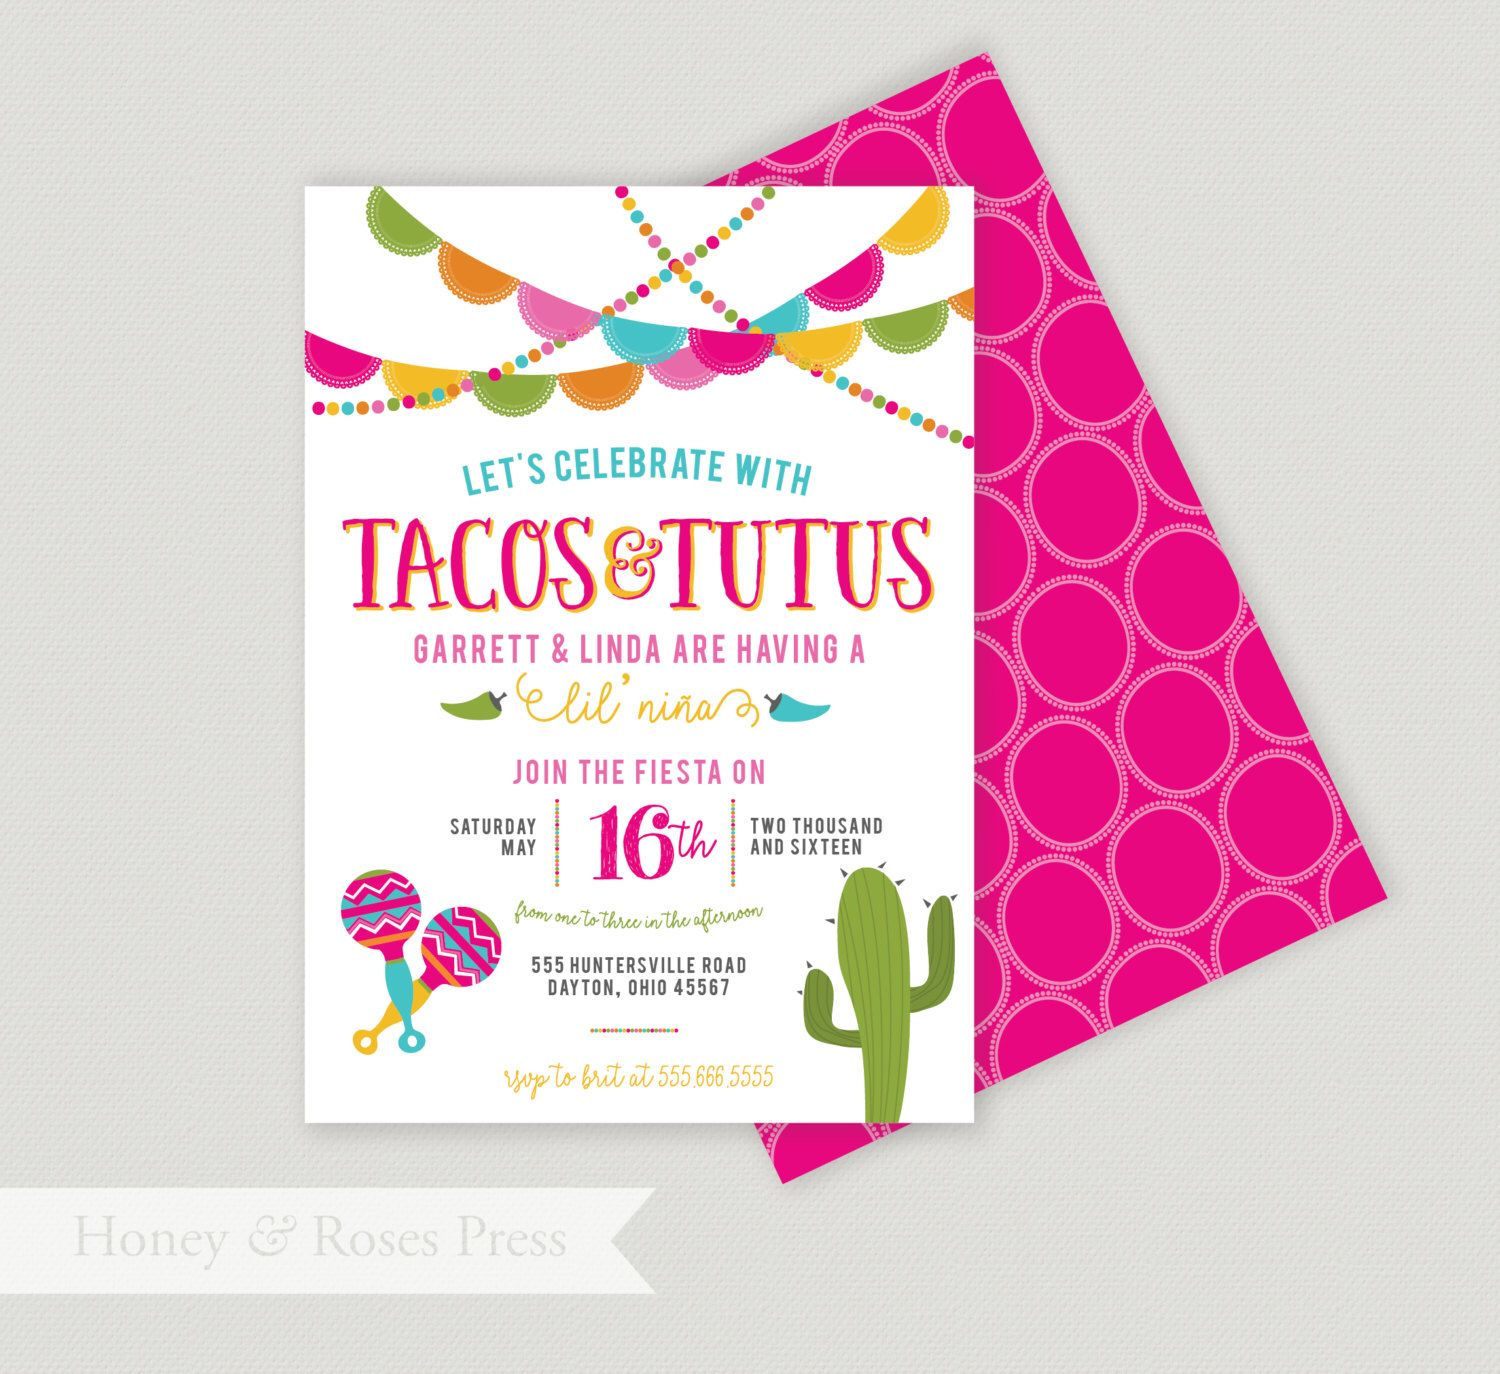 Tacos and tutus shower fiesta baby shower invite mexican themed tacos and tutus shower fiesta baby shower invite mexican themed shower couples baby filmwisefo Choice Image